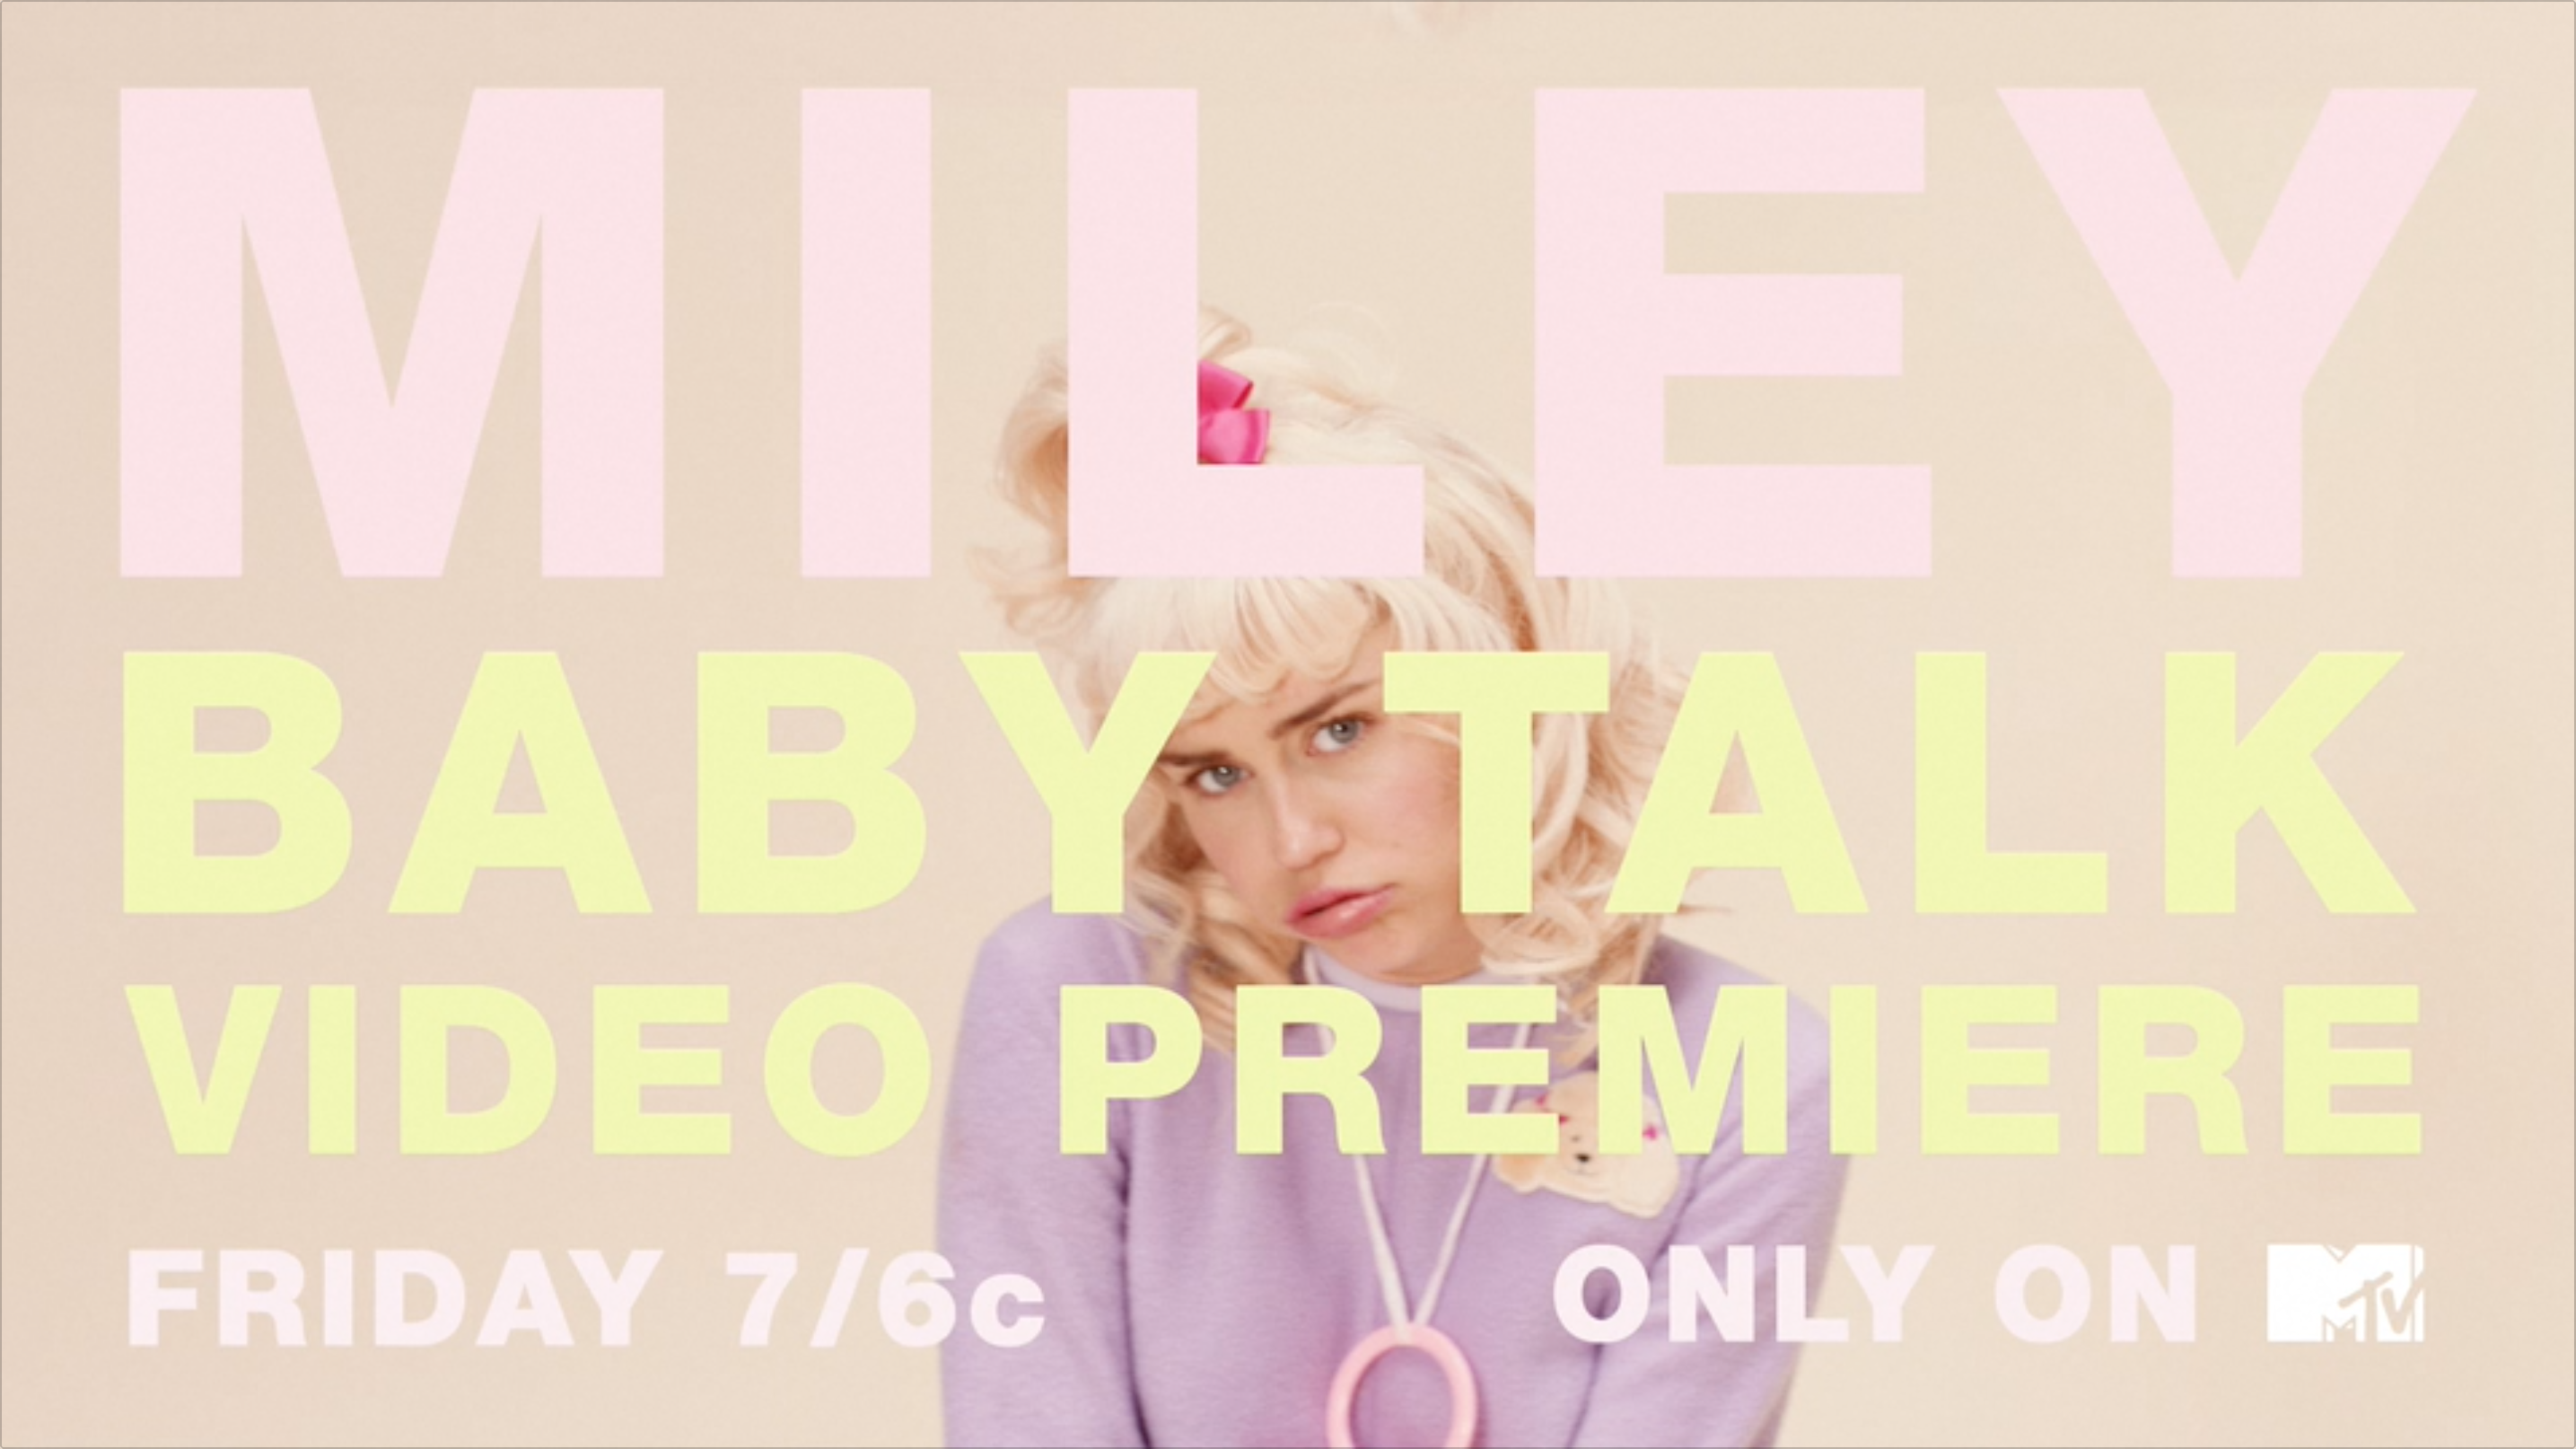 BB TALK Video Premiere